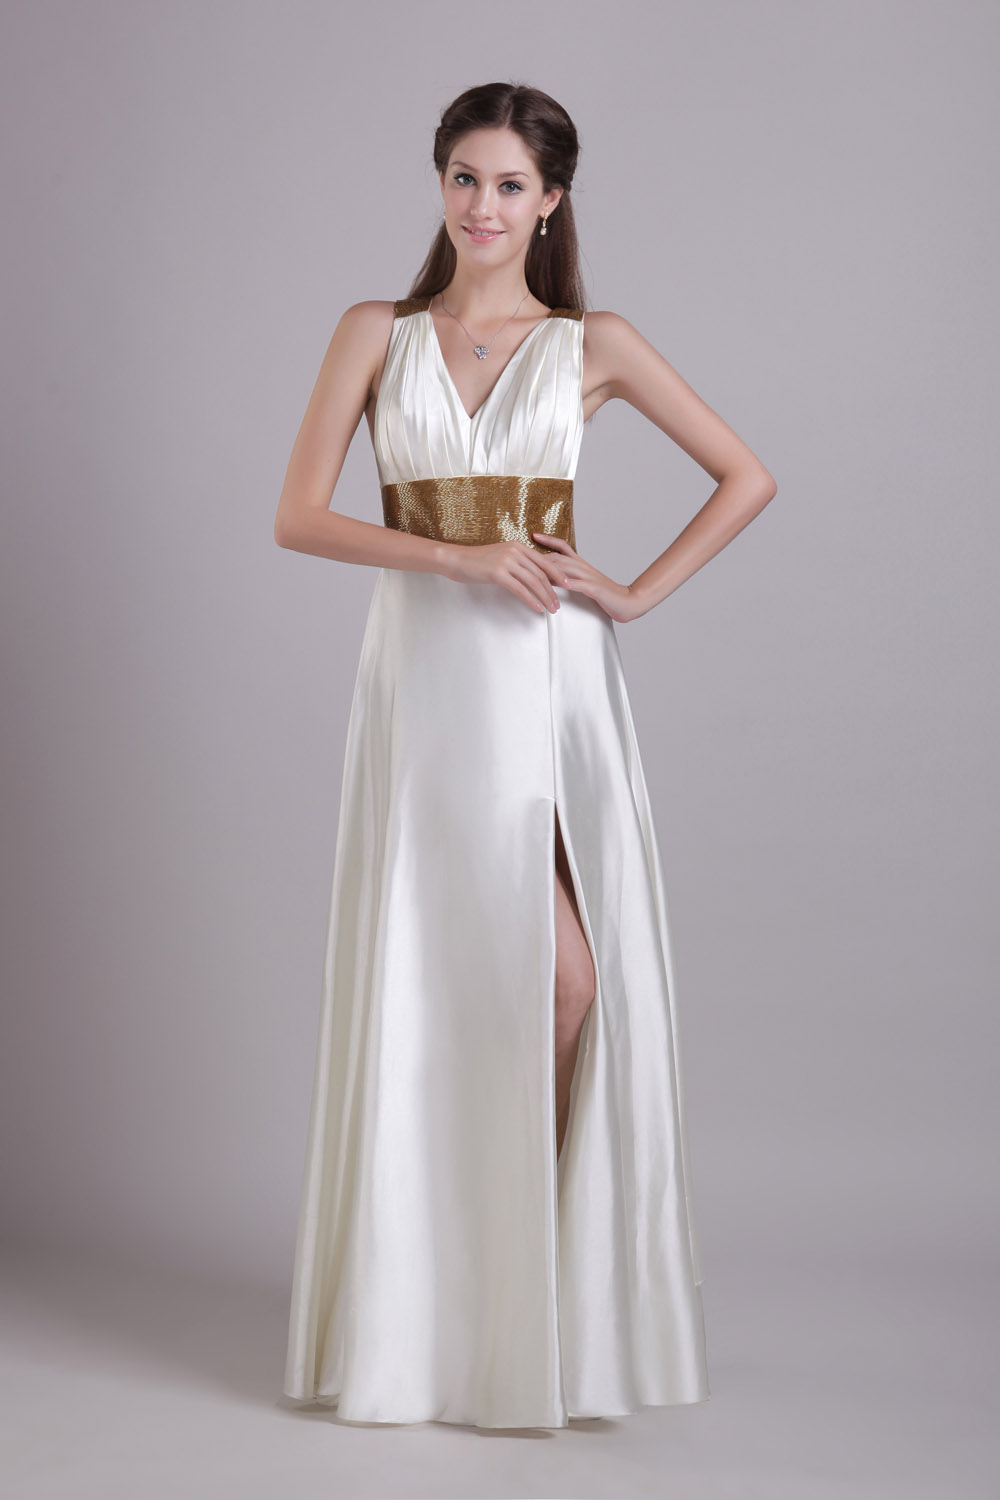 A-line Spaghetti Straps Floor-length Chiffon Evening Dress